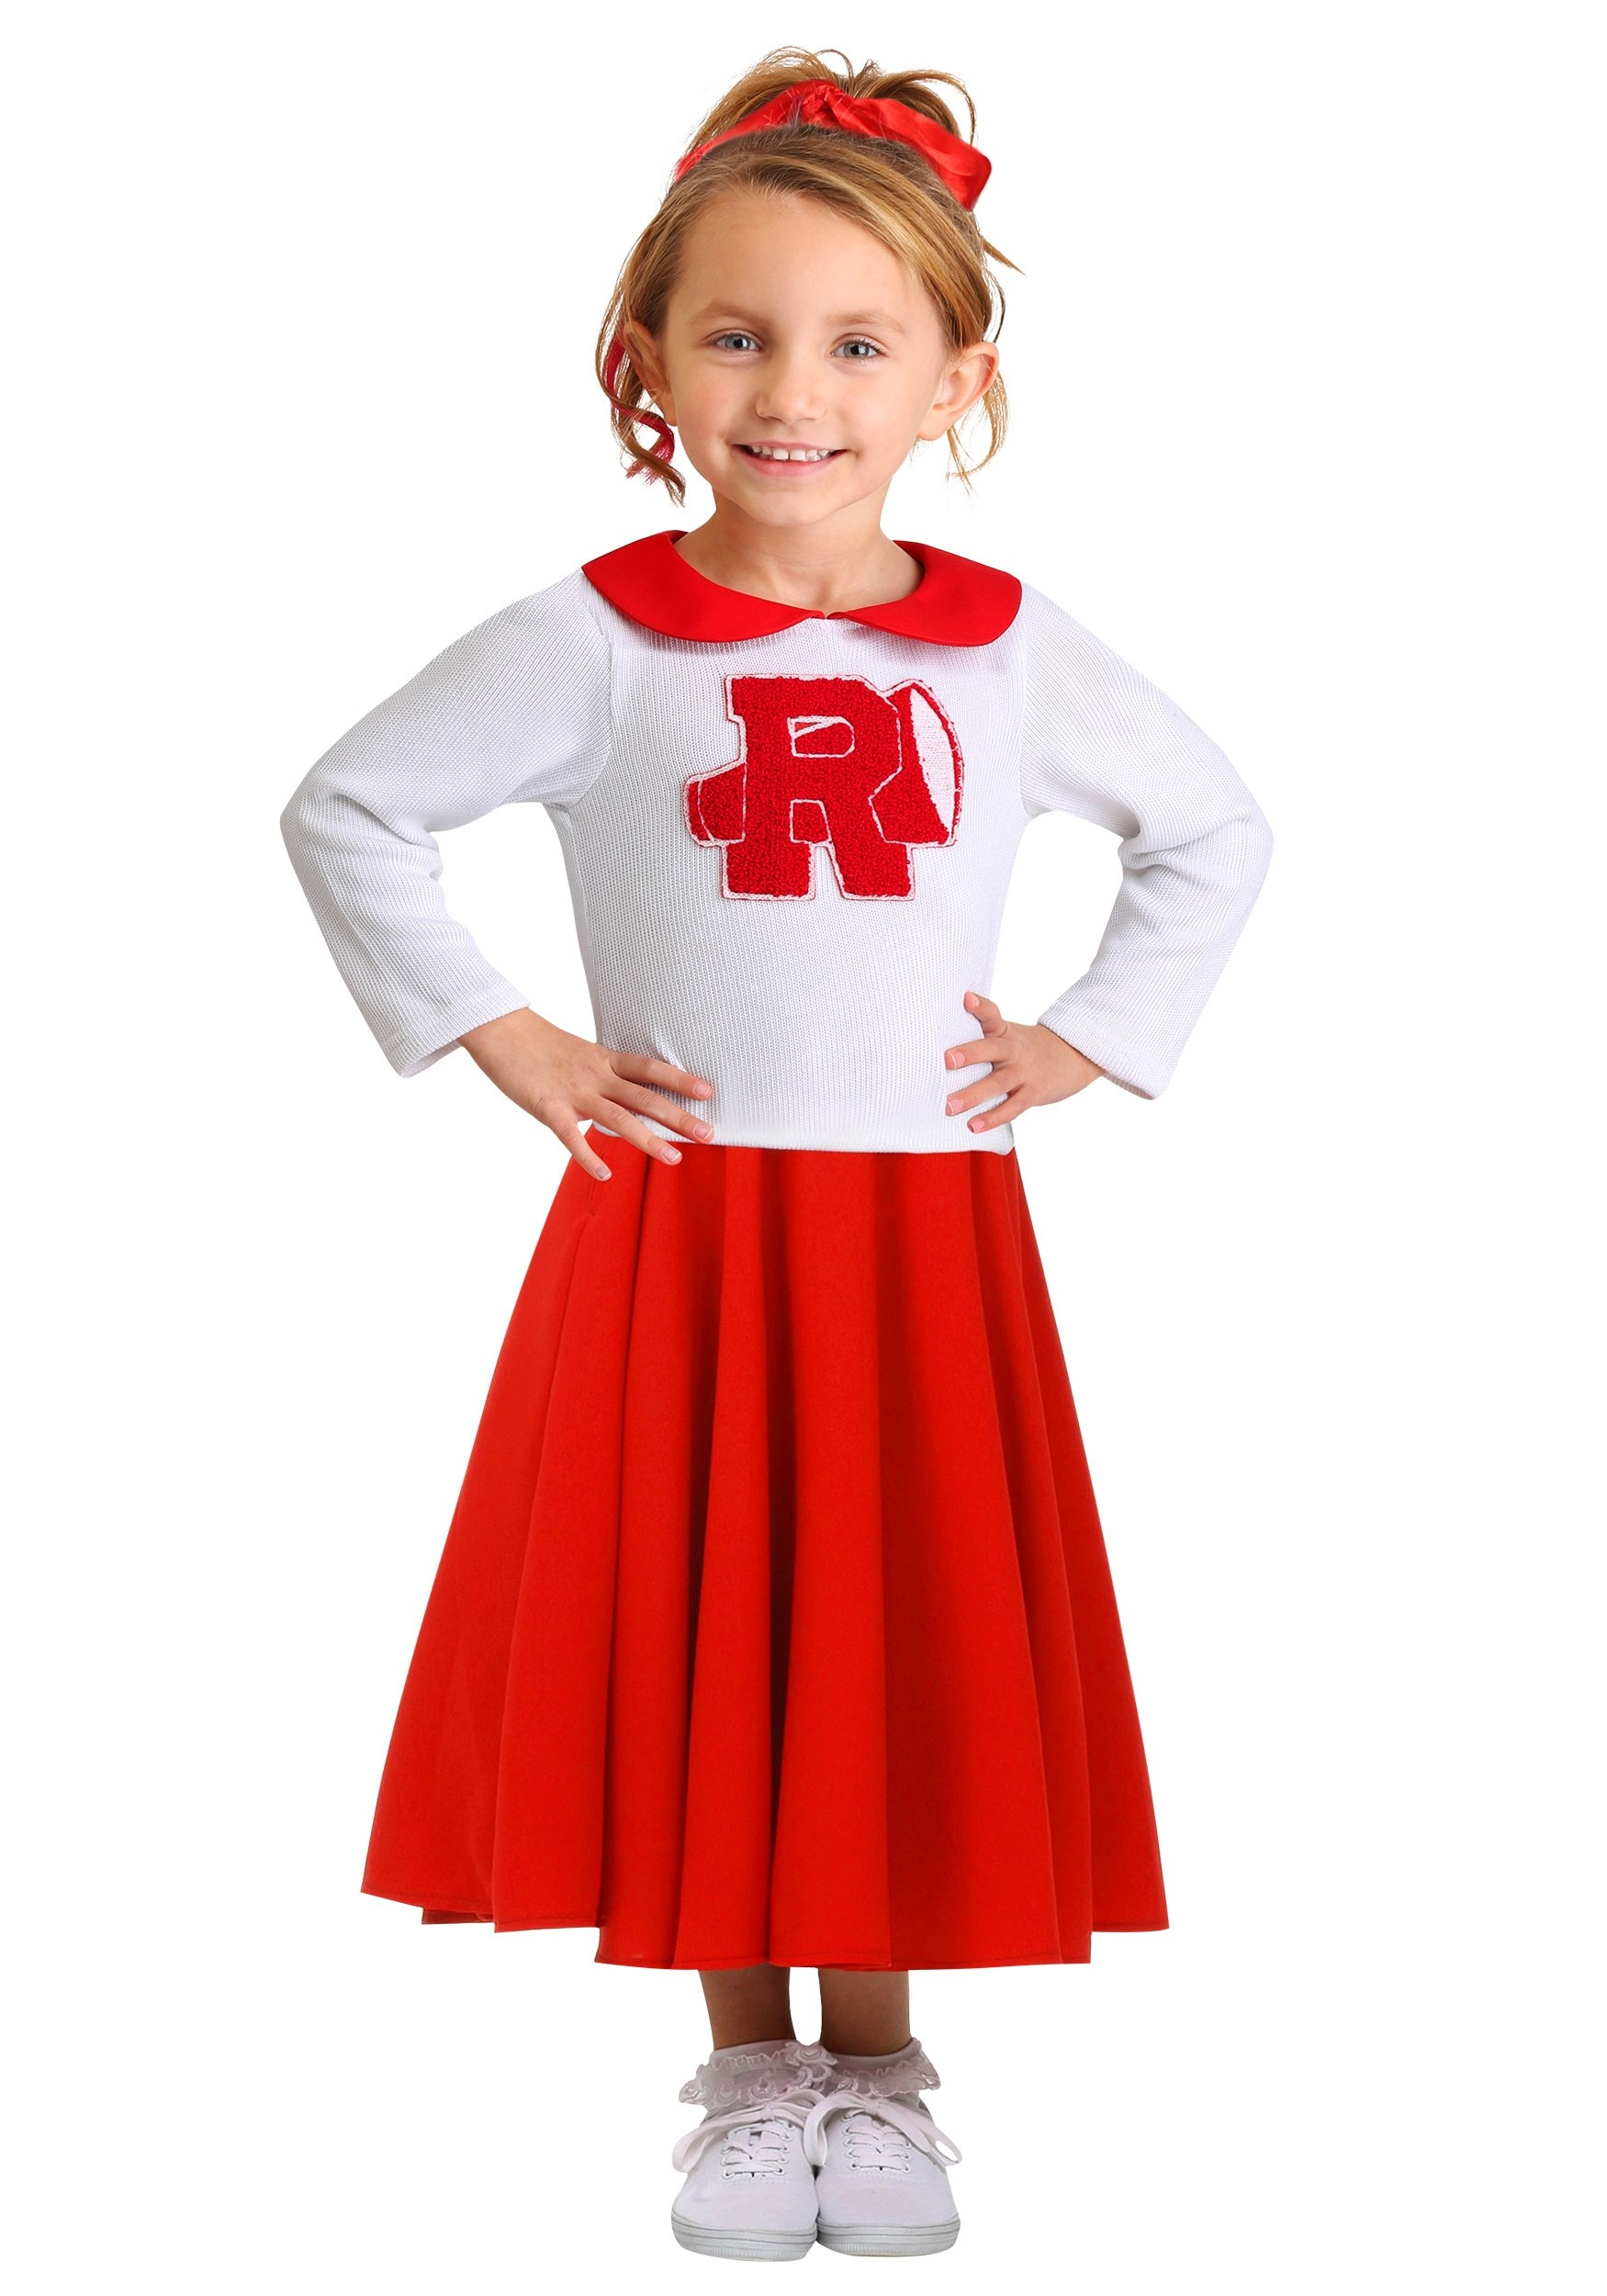 ed5396a5728 Grease Rydell High Toddler s Cheerleader Costume